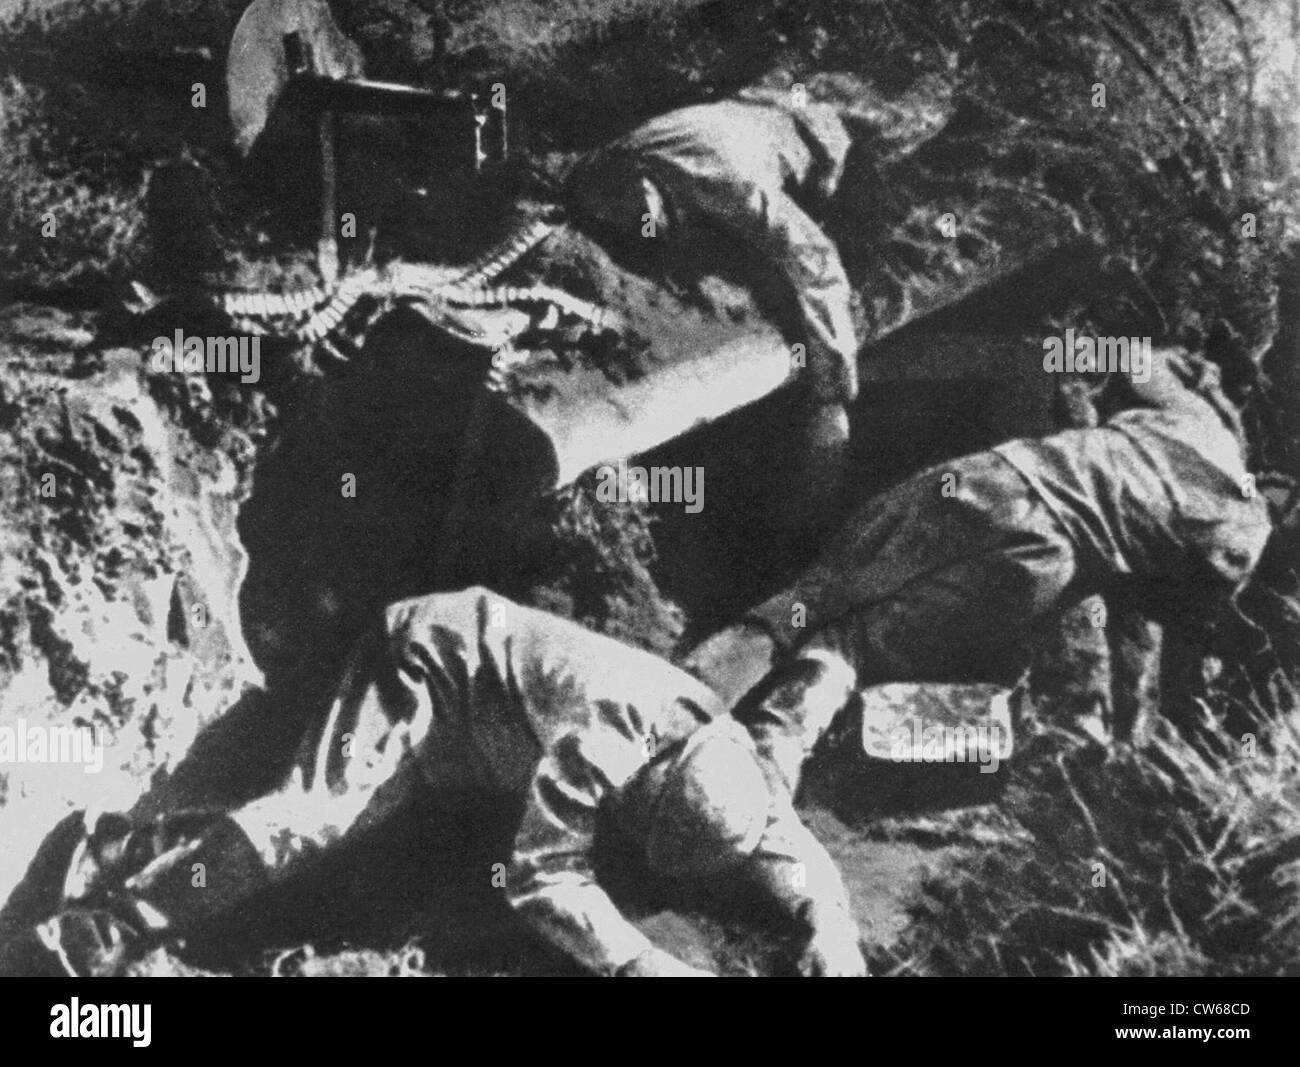 Corpses of Soviet soldiers in the ruins of Brest-Litovsk,1941 - Stock Image